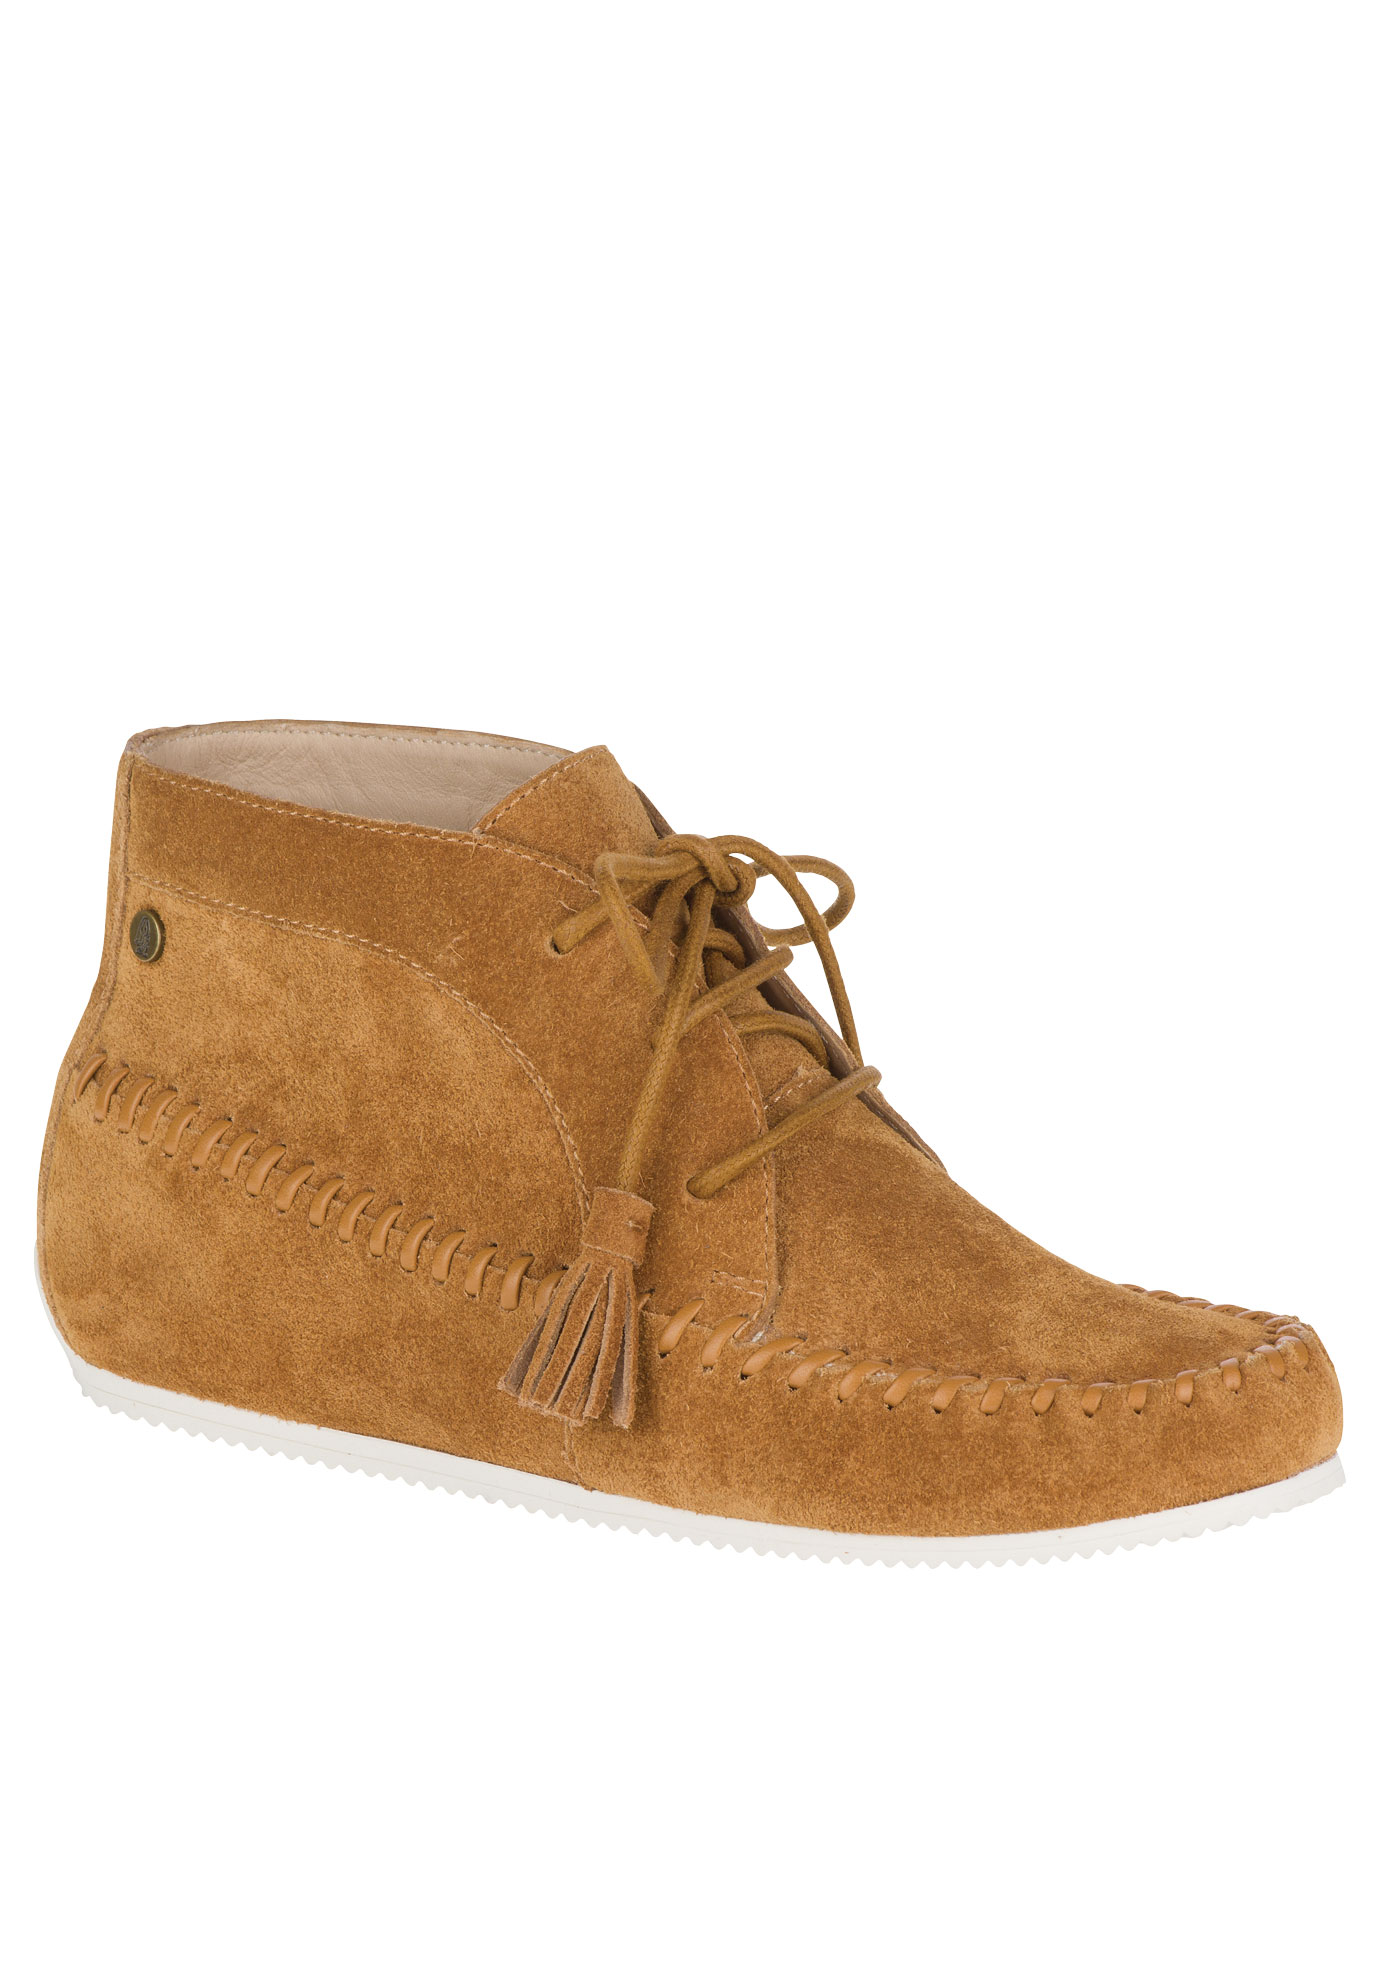 Kinsee Carine Booties by Hush Puppies®, CAMEL SUEDE, hi-res